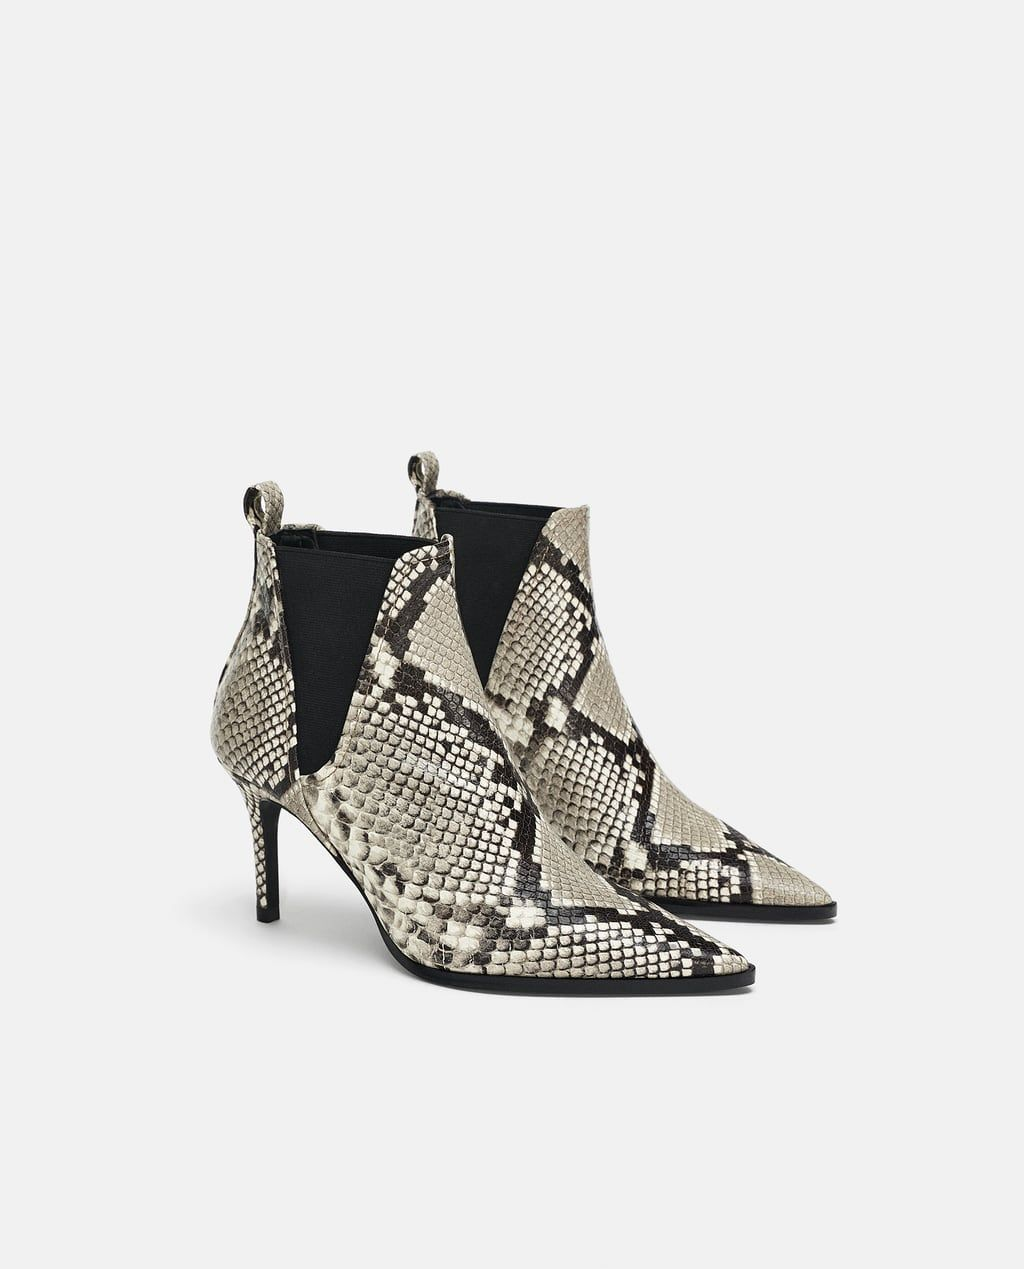 e9d7ad203b3 Image 1 of PRINTED LEATHER HIGH-HEEL ANKLE BOOTS from Zara